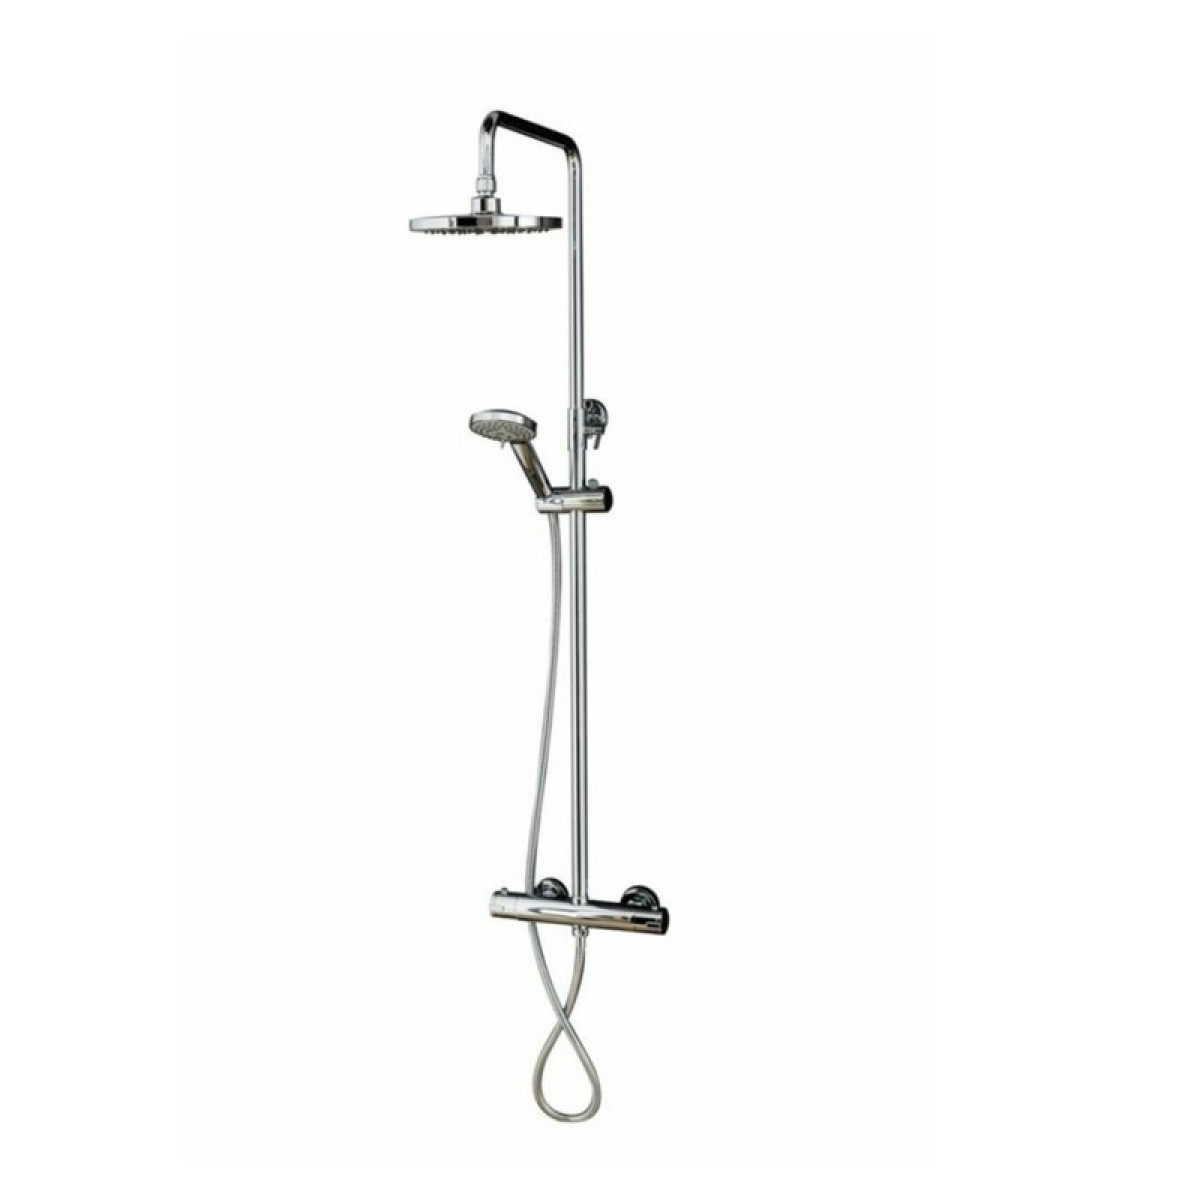 Cassellie Deana thermostatic mixer shower | SK006